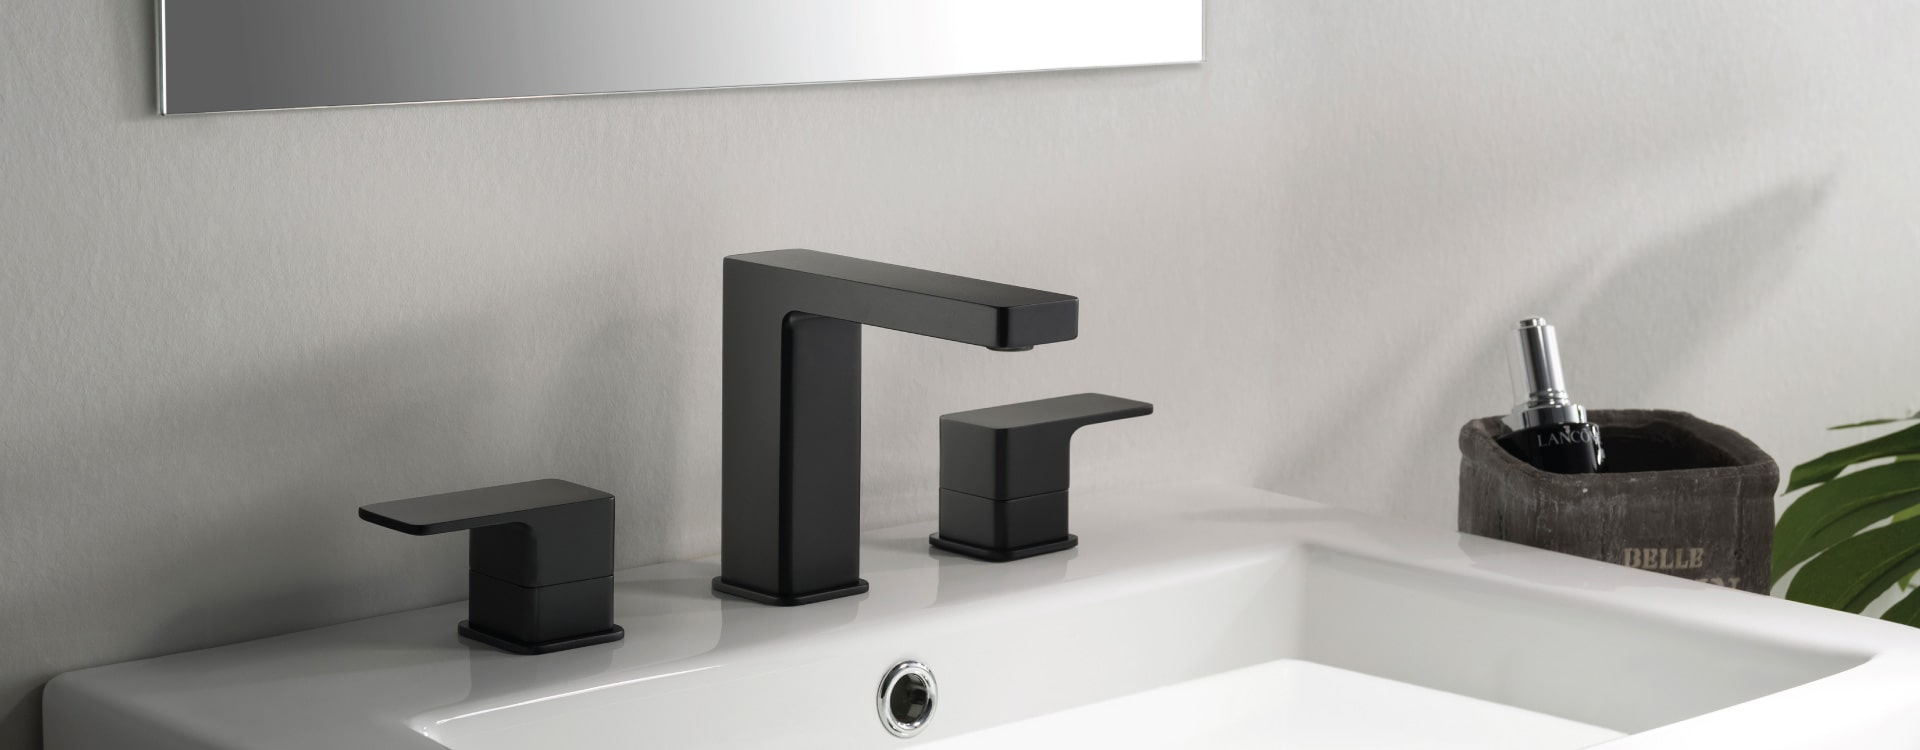 matte black bathroom sink faucet on white modern vanity